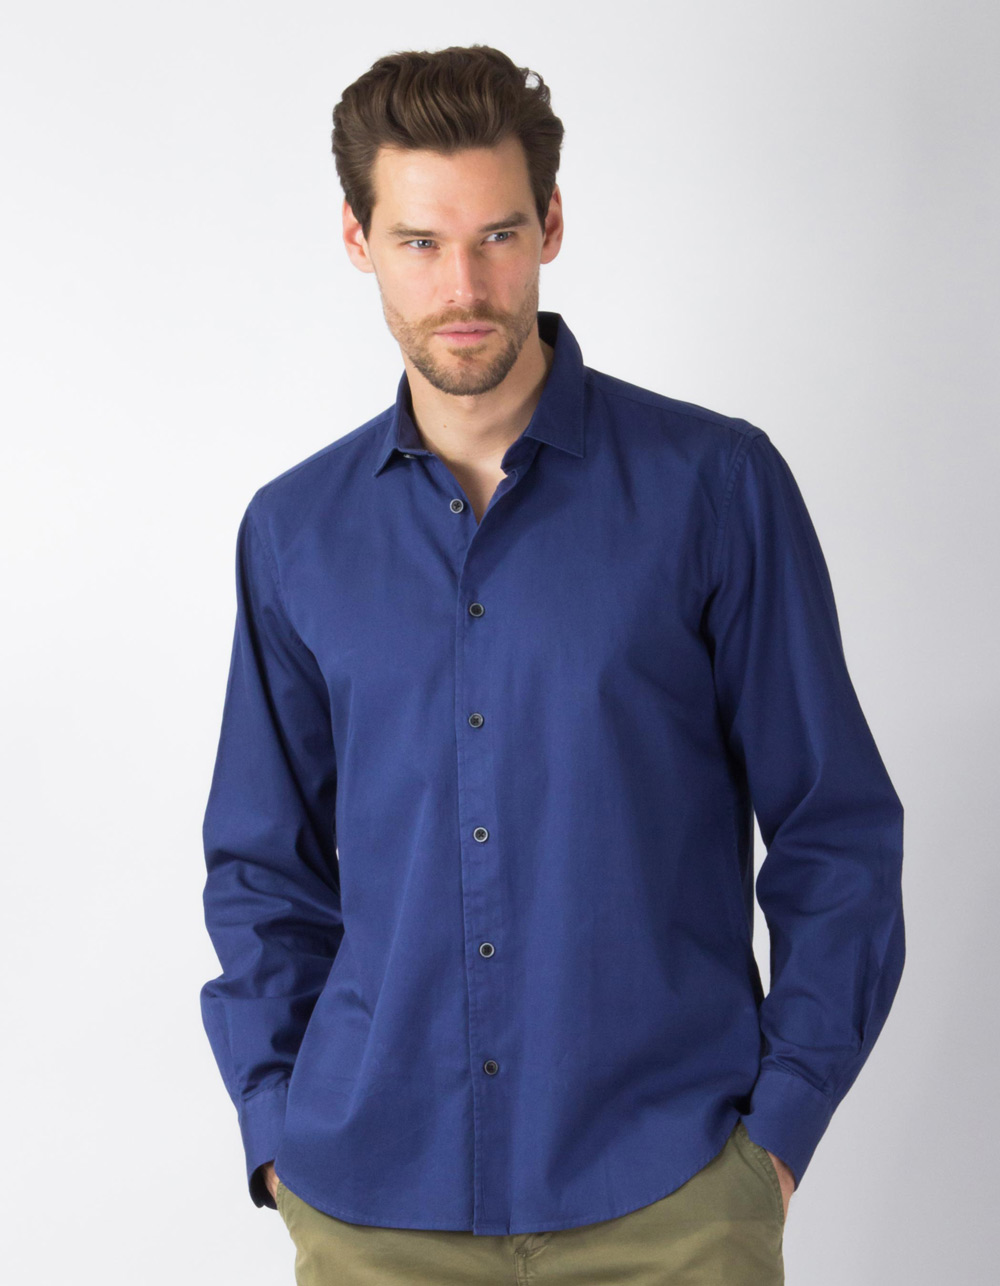 Navy blue plain shirt